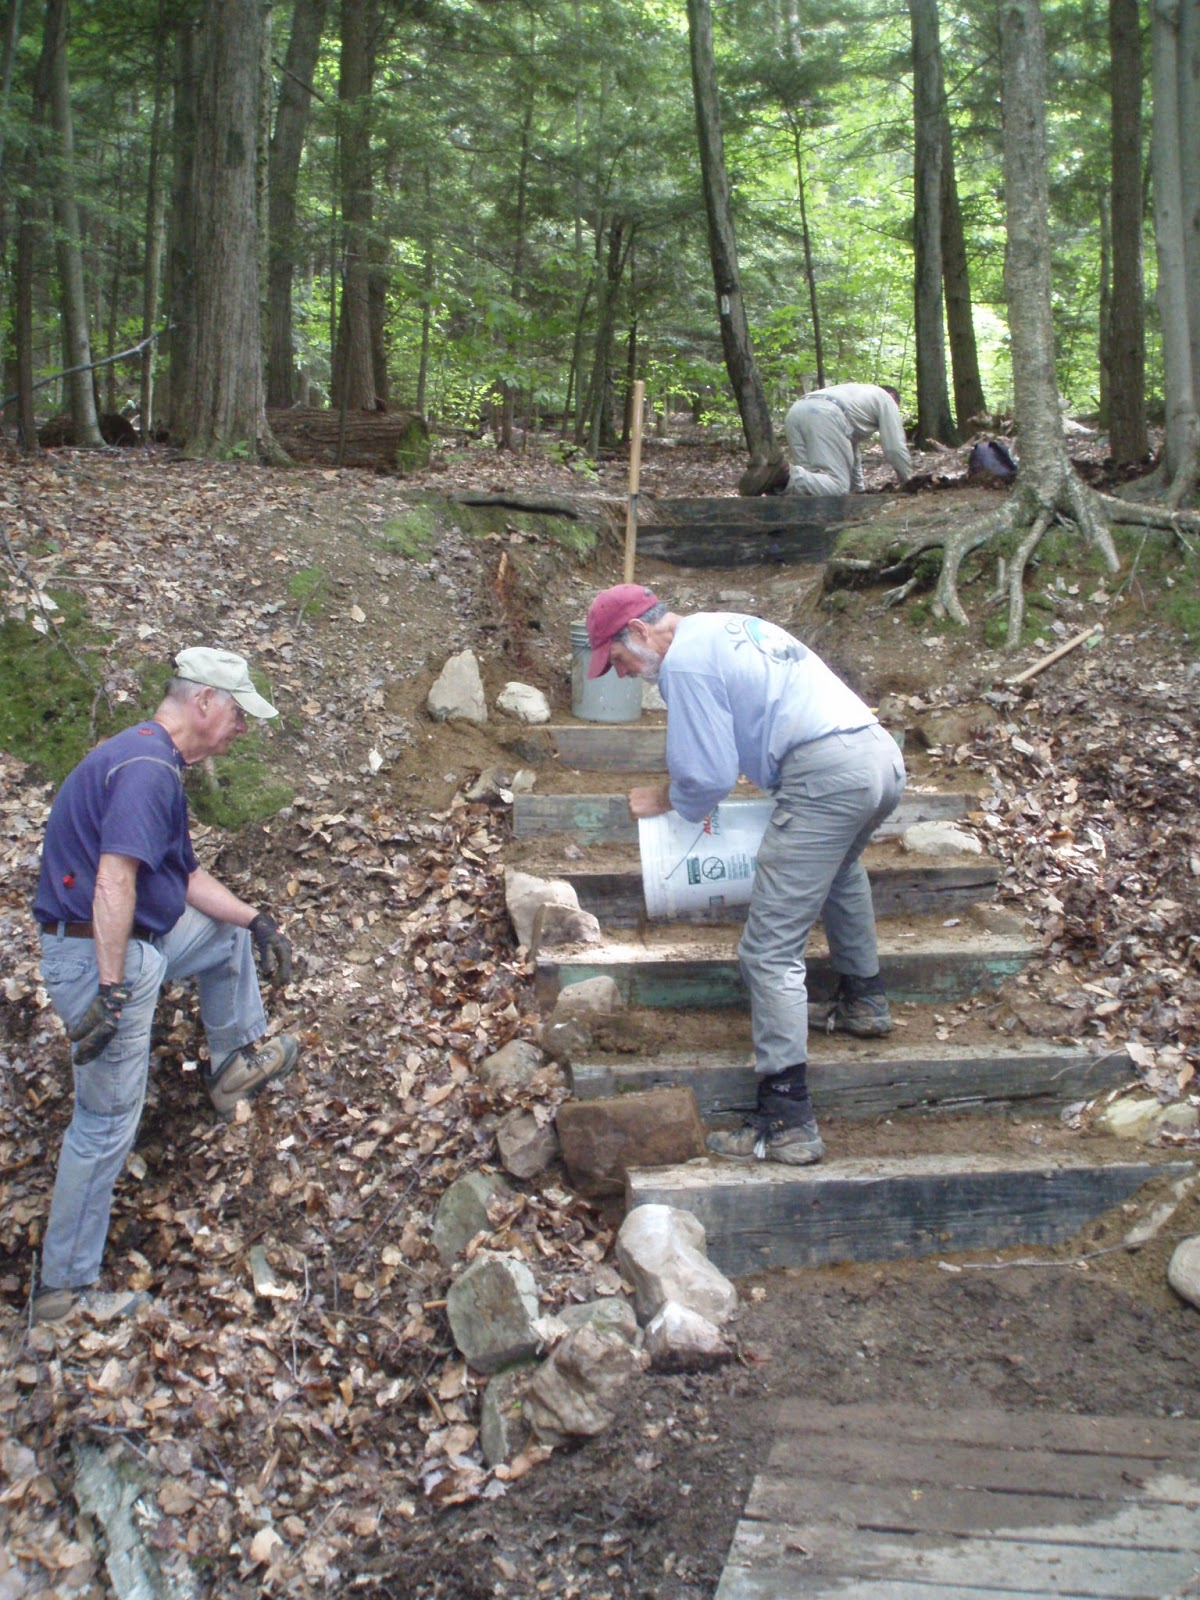 Fun in the woods massachusetts at committee project blog for How to build a house on a steep slope